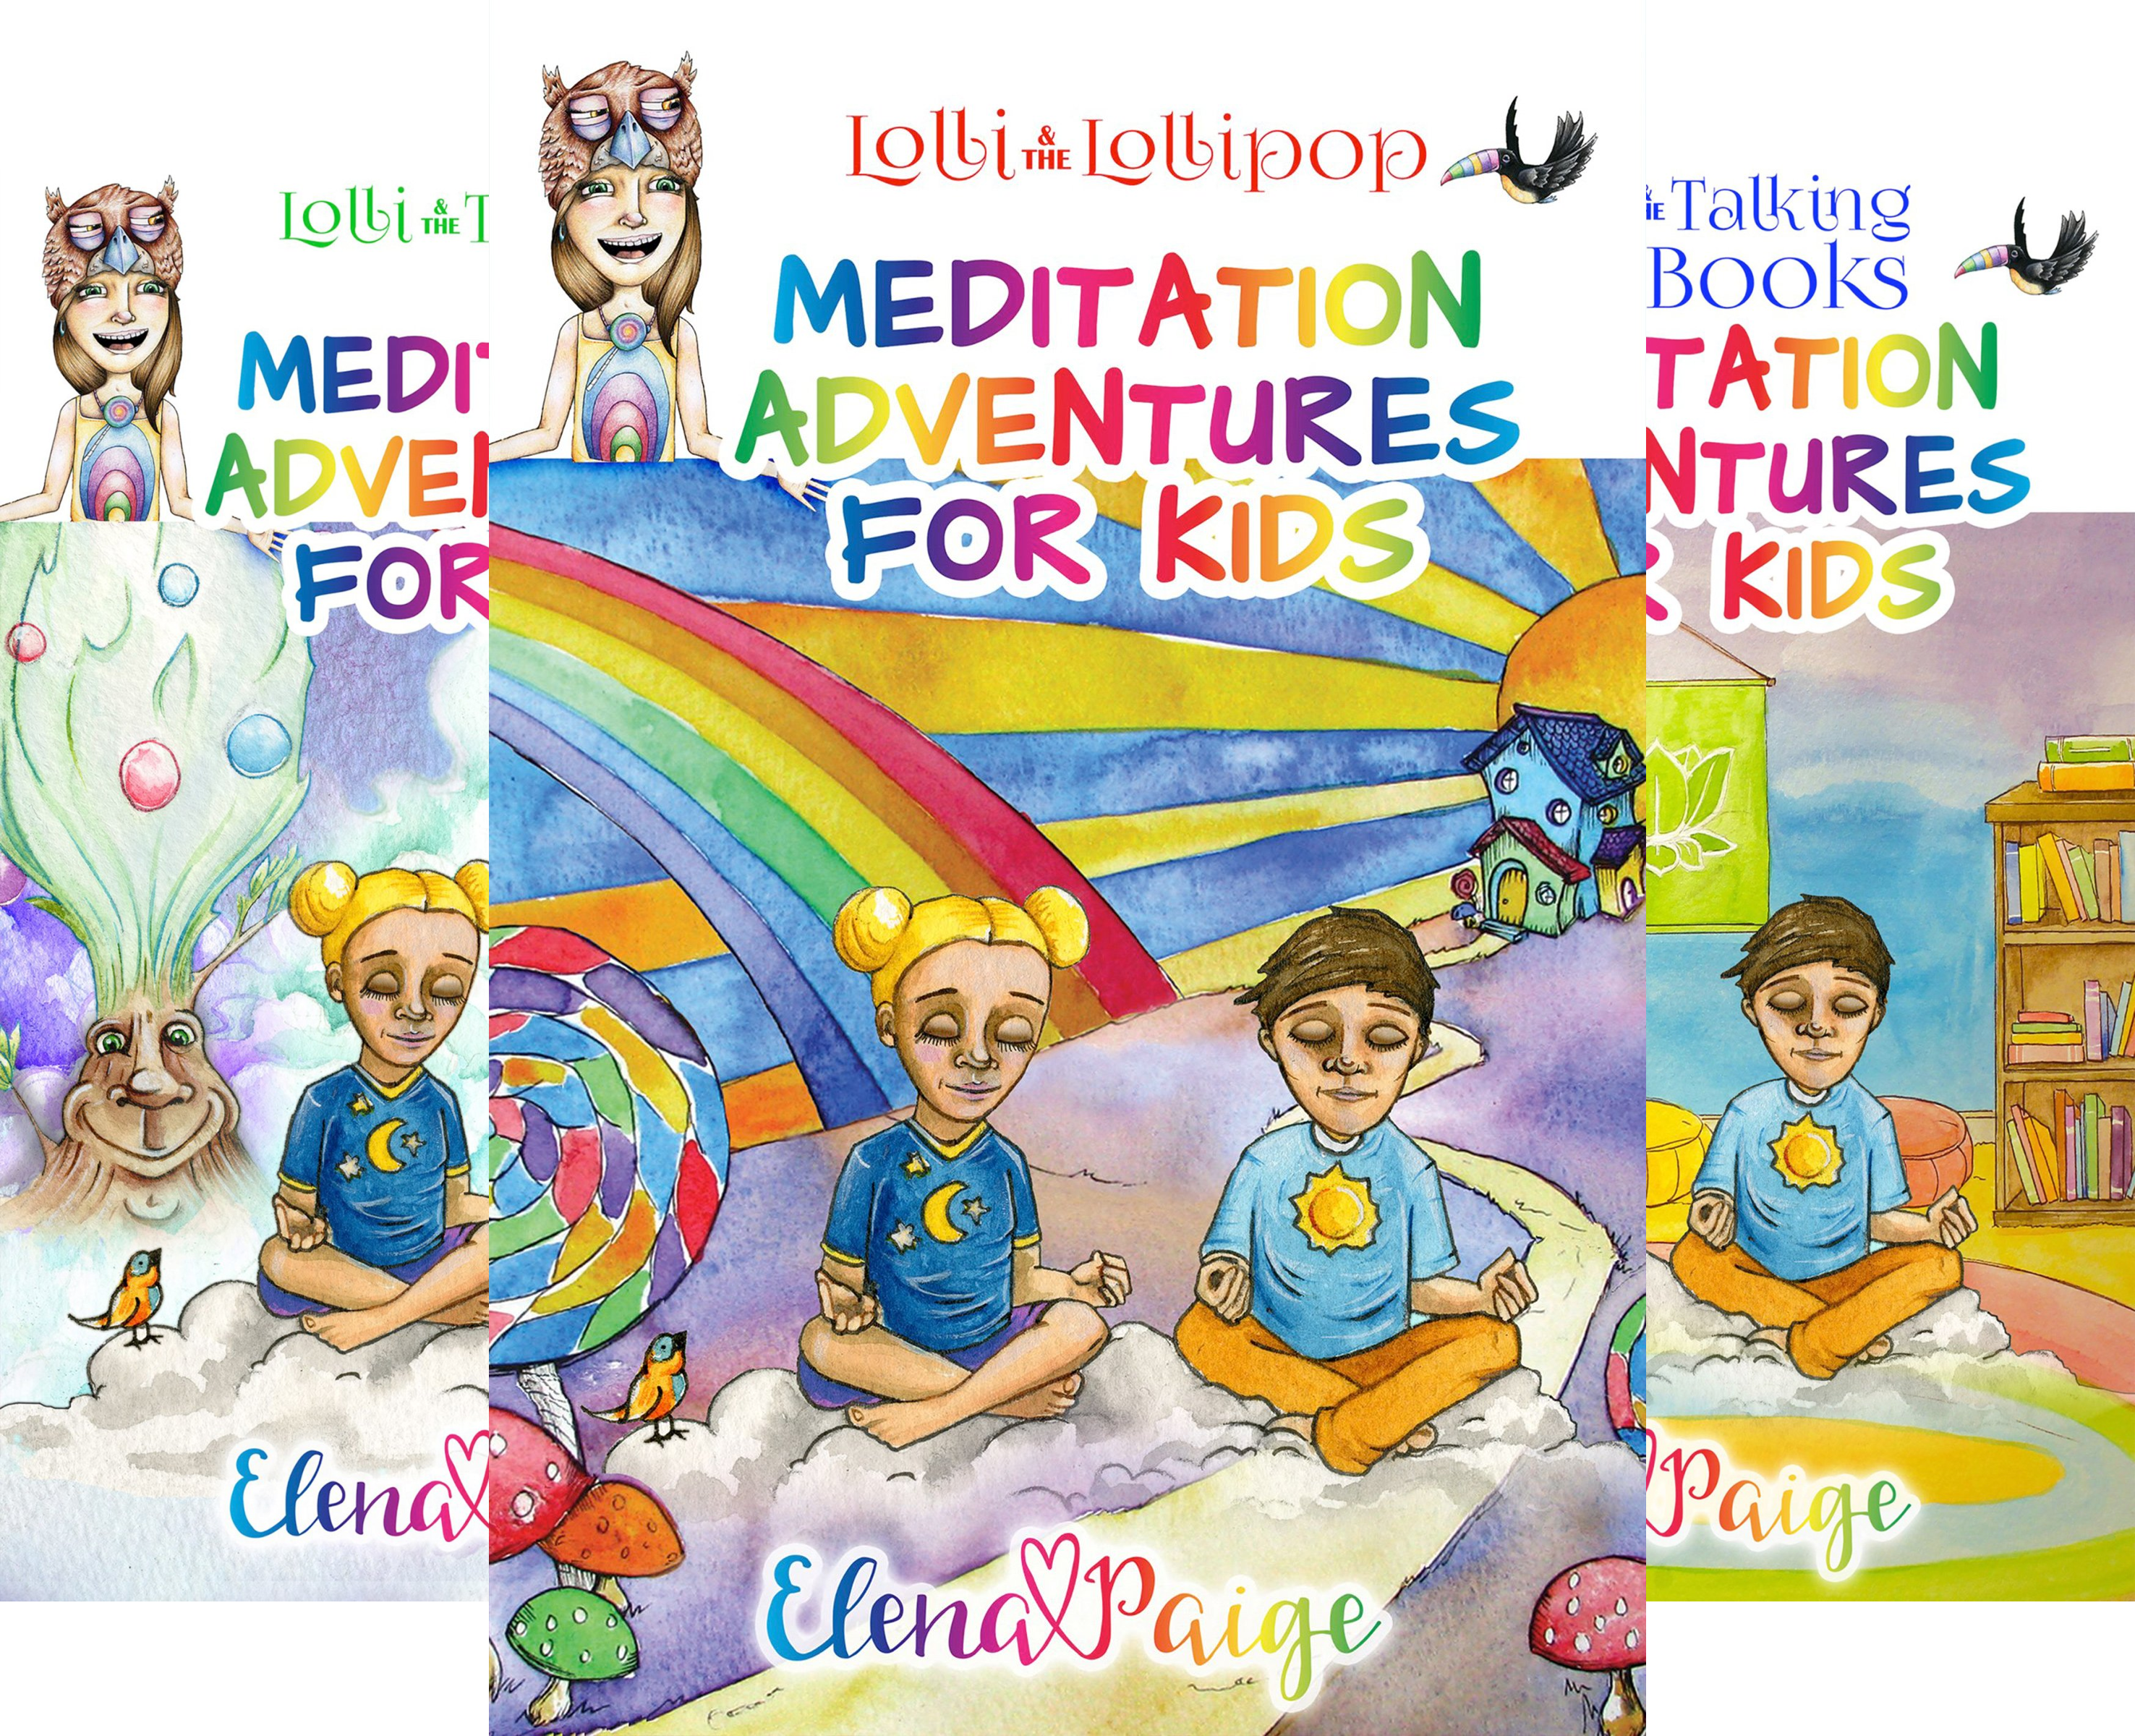 MEDITATION ADVENTURES FOR KIDS (5 Book Series)